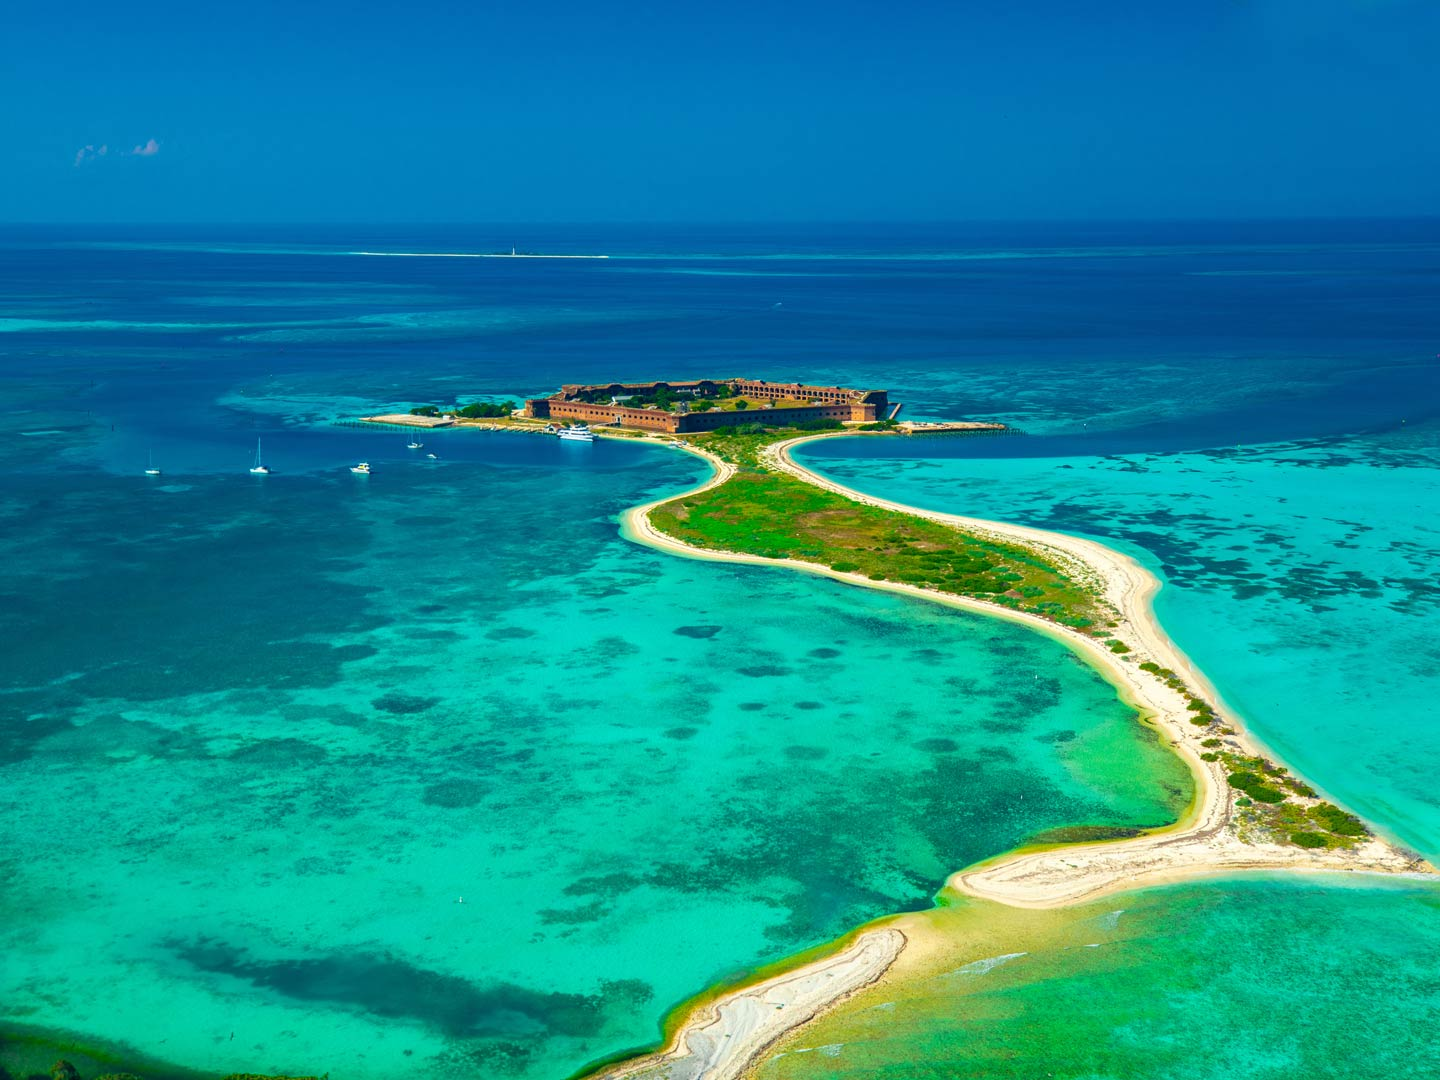 An aerial view of Garden Key on Dry Tortugas showing the Jefferson Fort